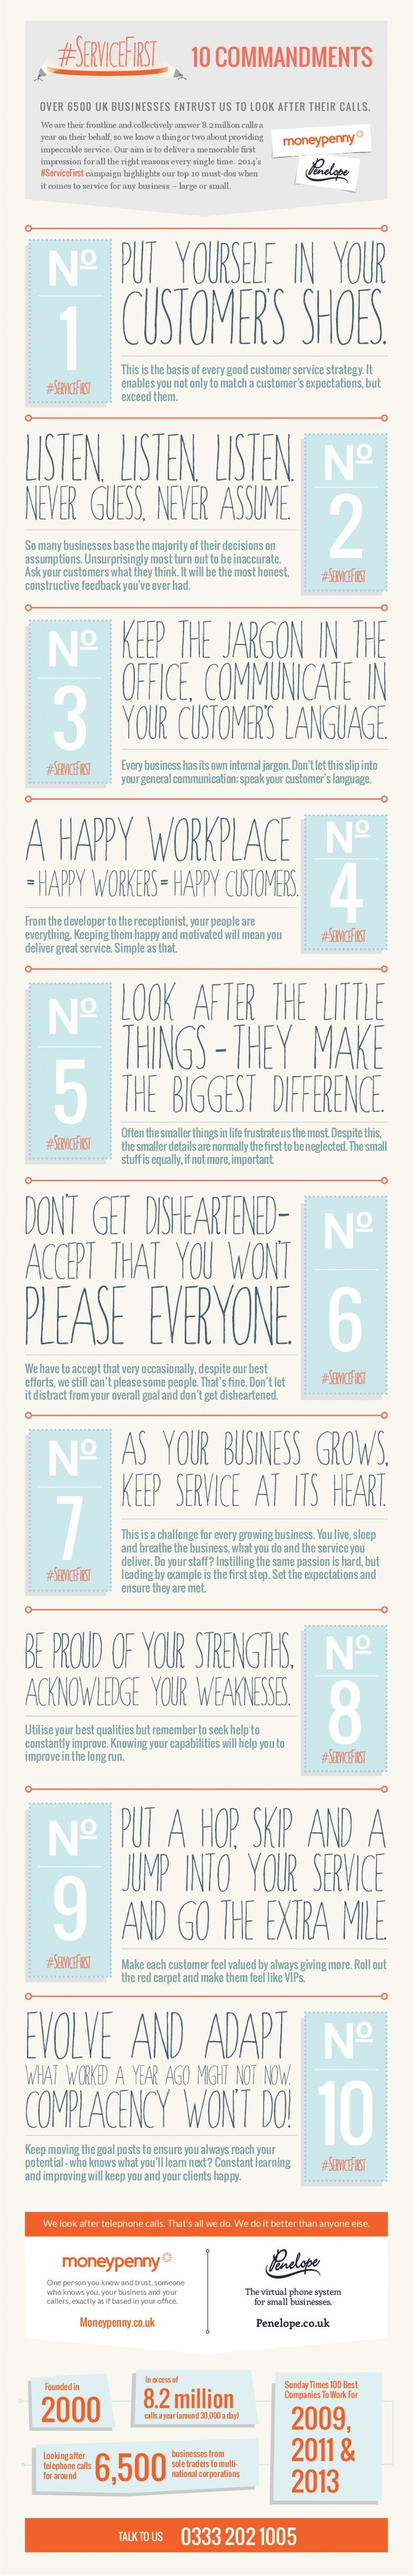 iTips: Service First 10 Commandments: customer service tips (by MoneyPenny.co.uk)